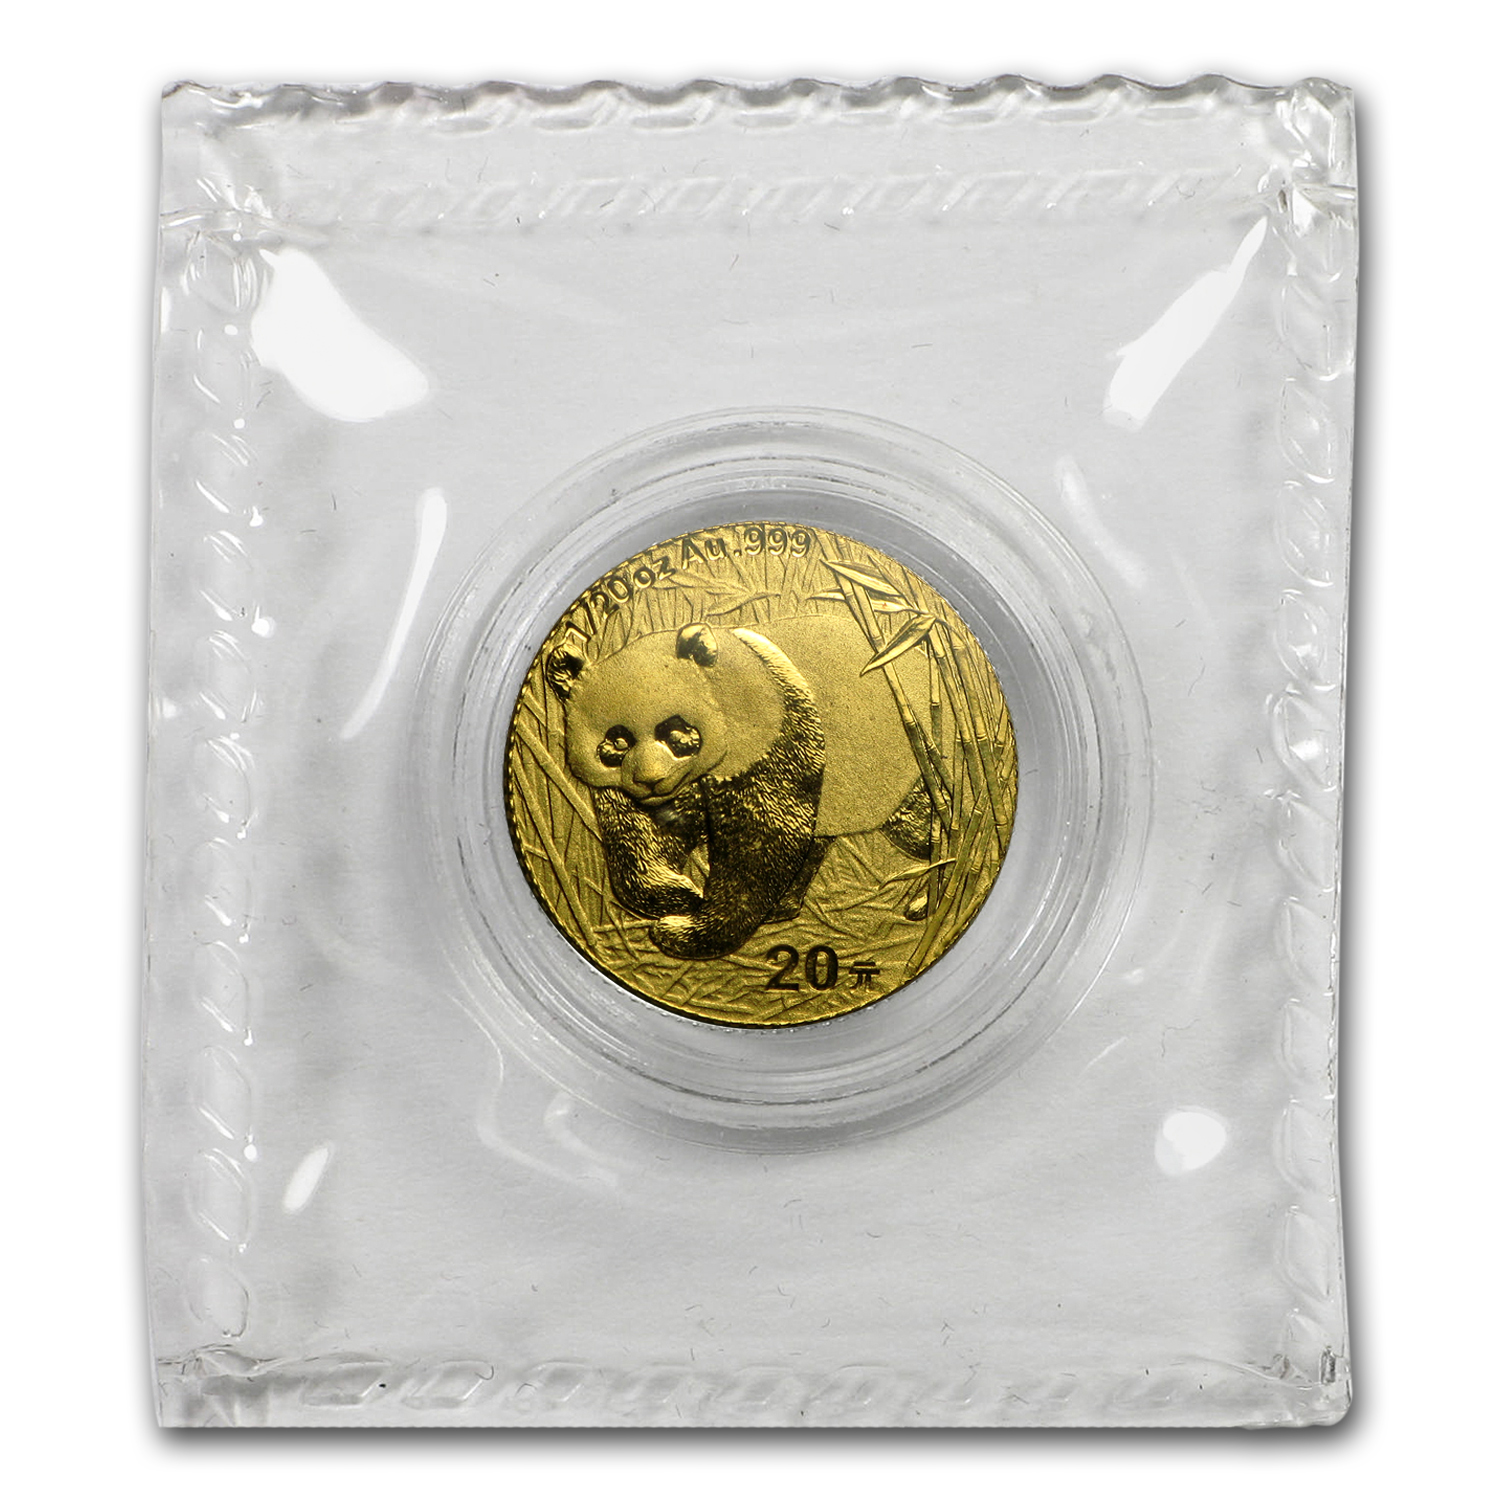 2001 1/20 oz Gold Chinese Panda BU (Sealed)